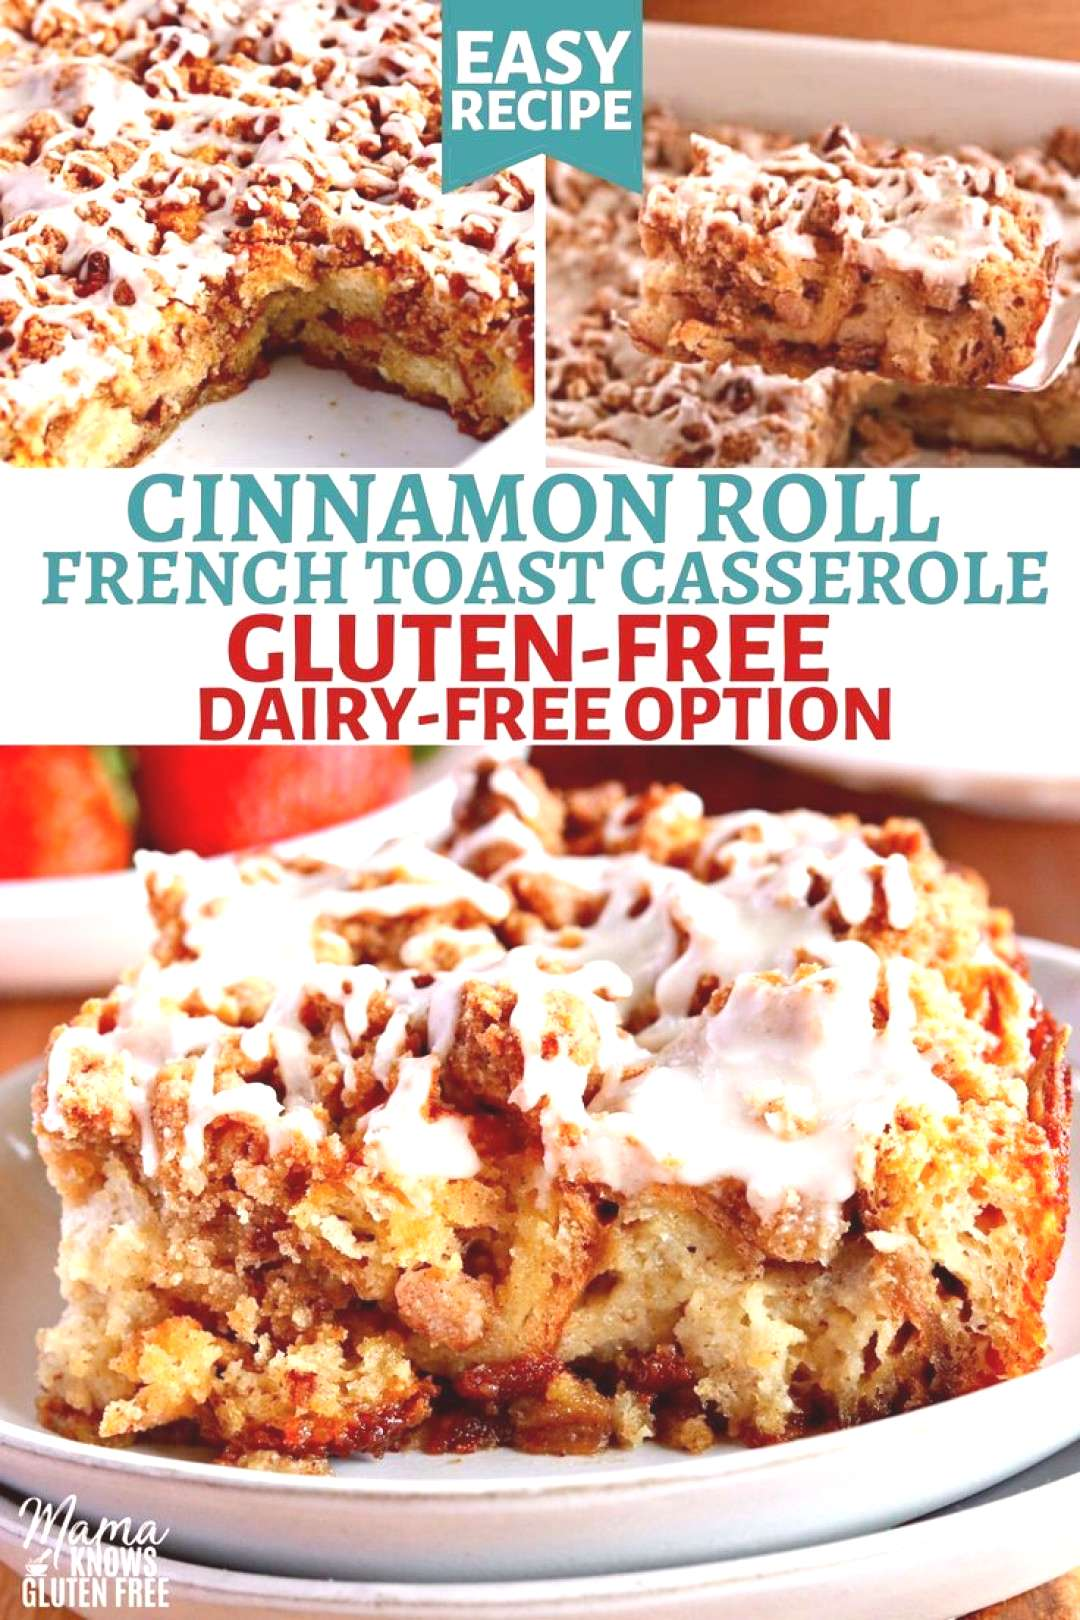 Gluten-Free Cinnamon Roll French Toast Casserole -  An easy recipe for Gluten-Free French Toast Cas